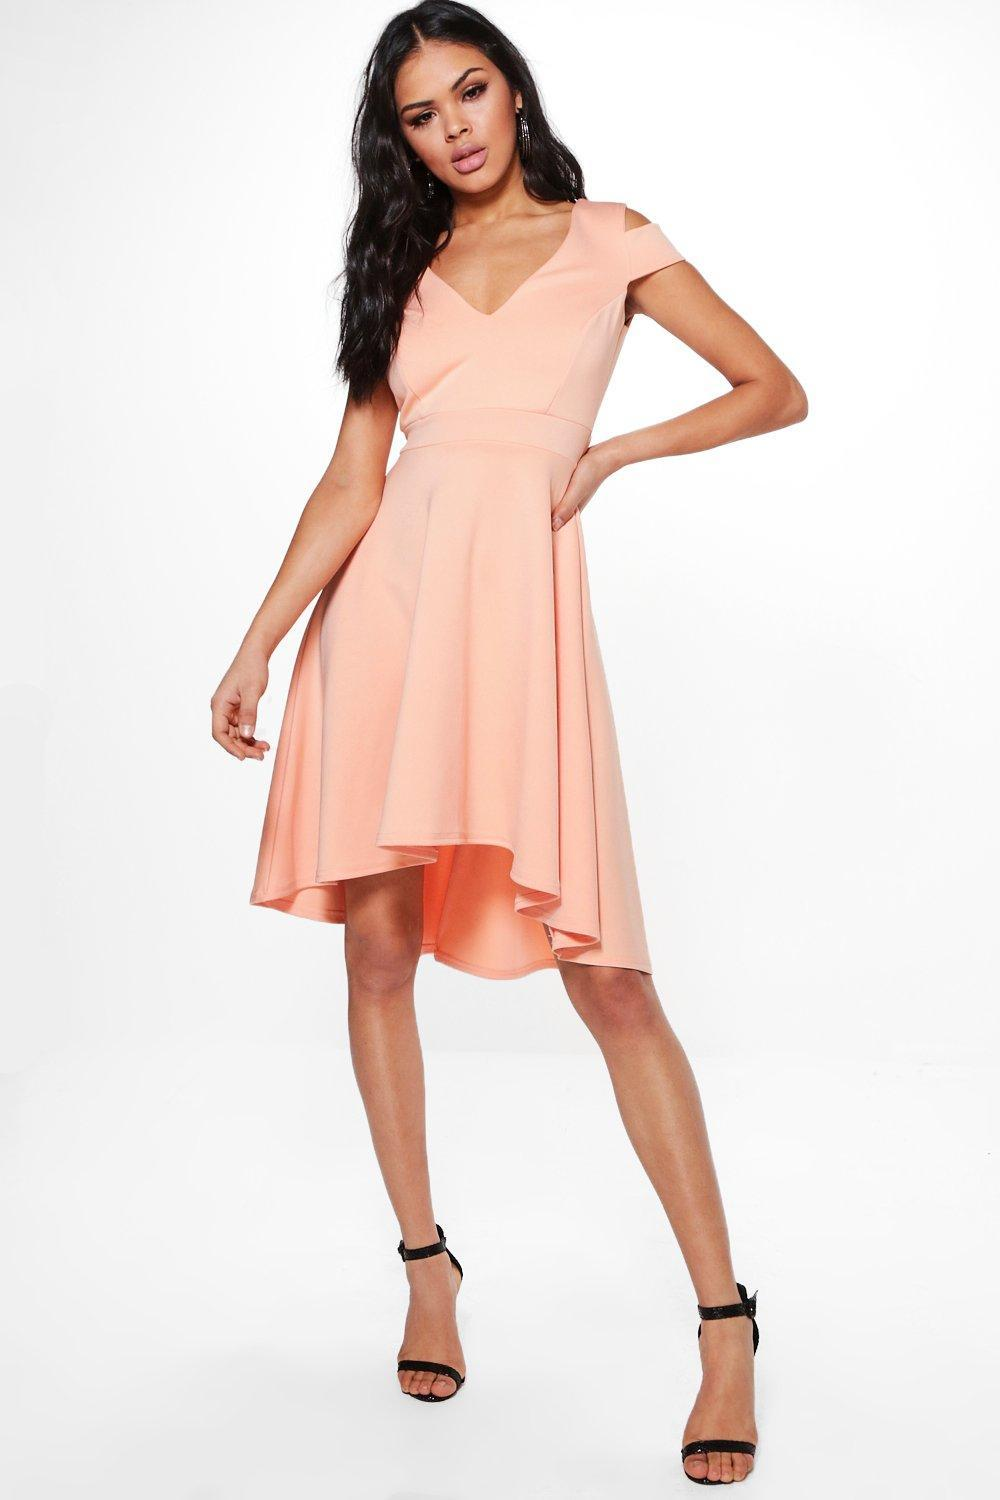 cf23b1bc54e4 Boohoo Clea Bardot Plunge Skater Dress in Orange - Lyst